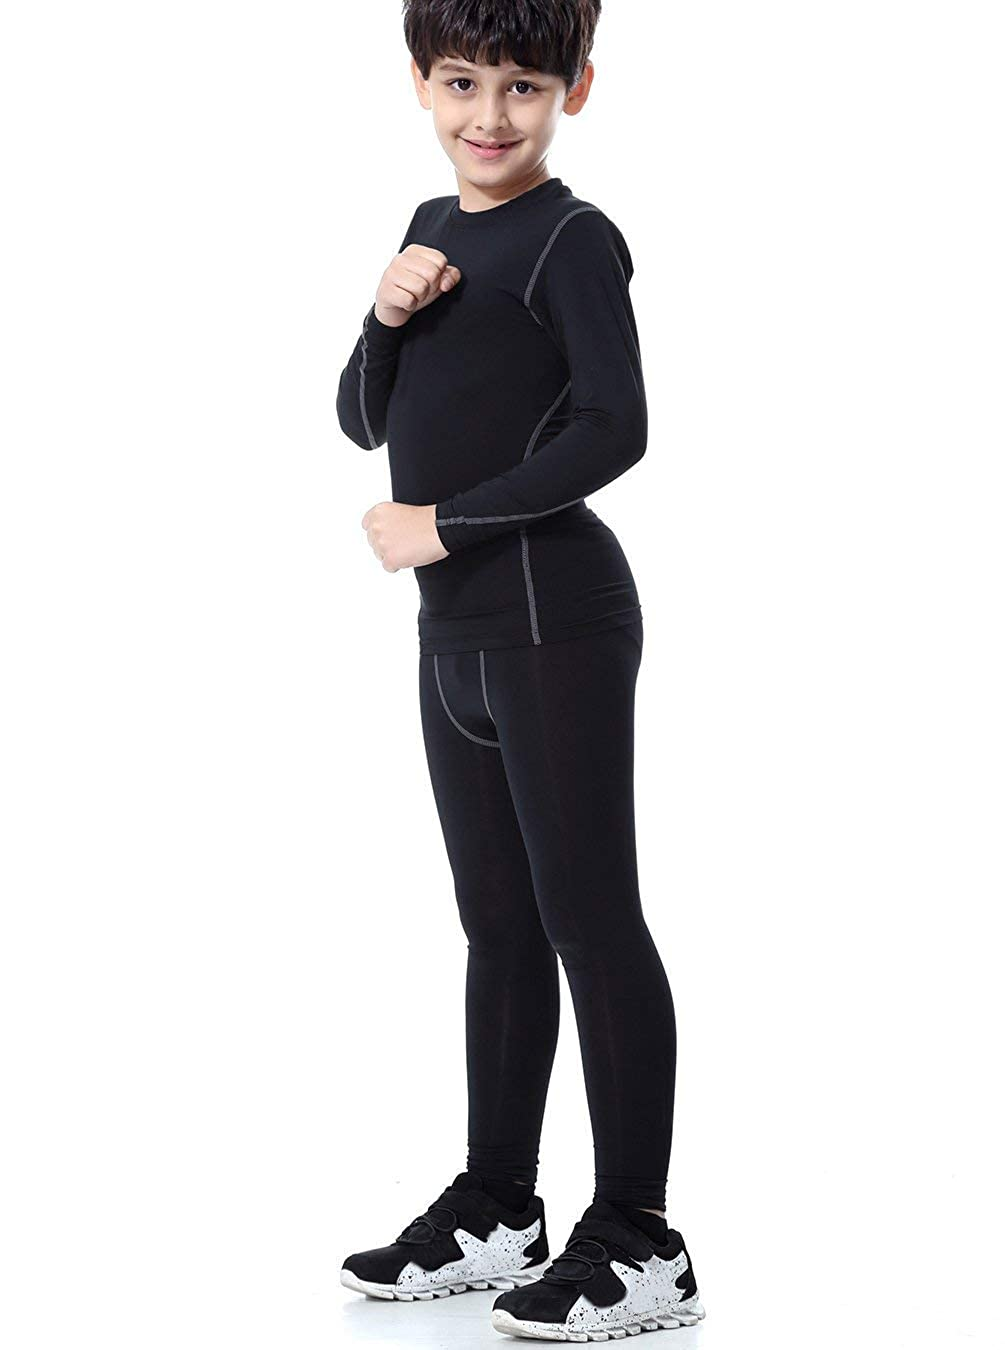 LNJLVI Boys /& Girls Sports Compression Shirts Long Sleeve and Pant 2 PCS Set